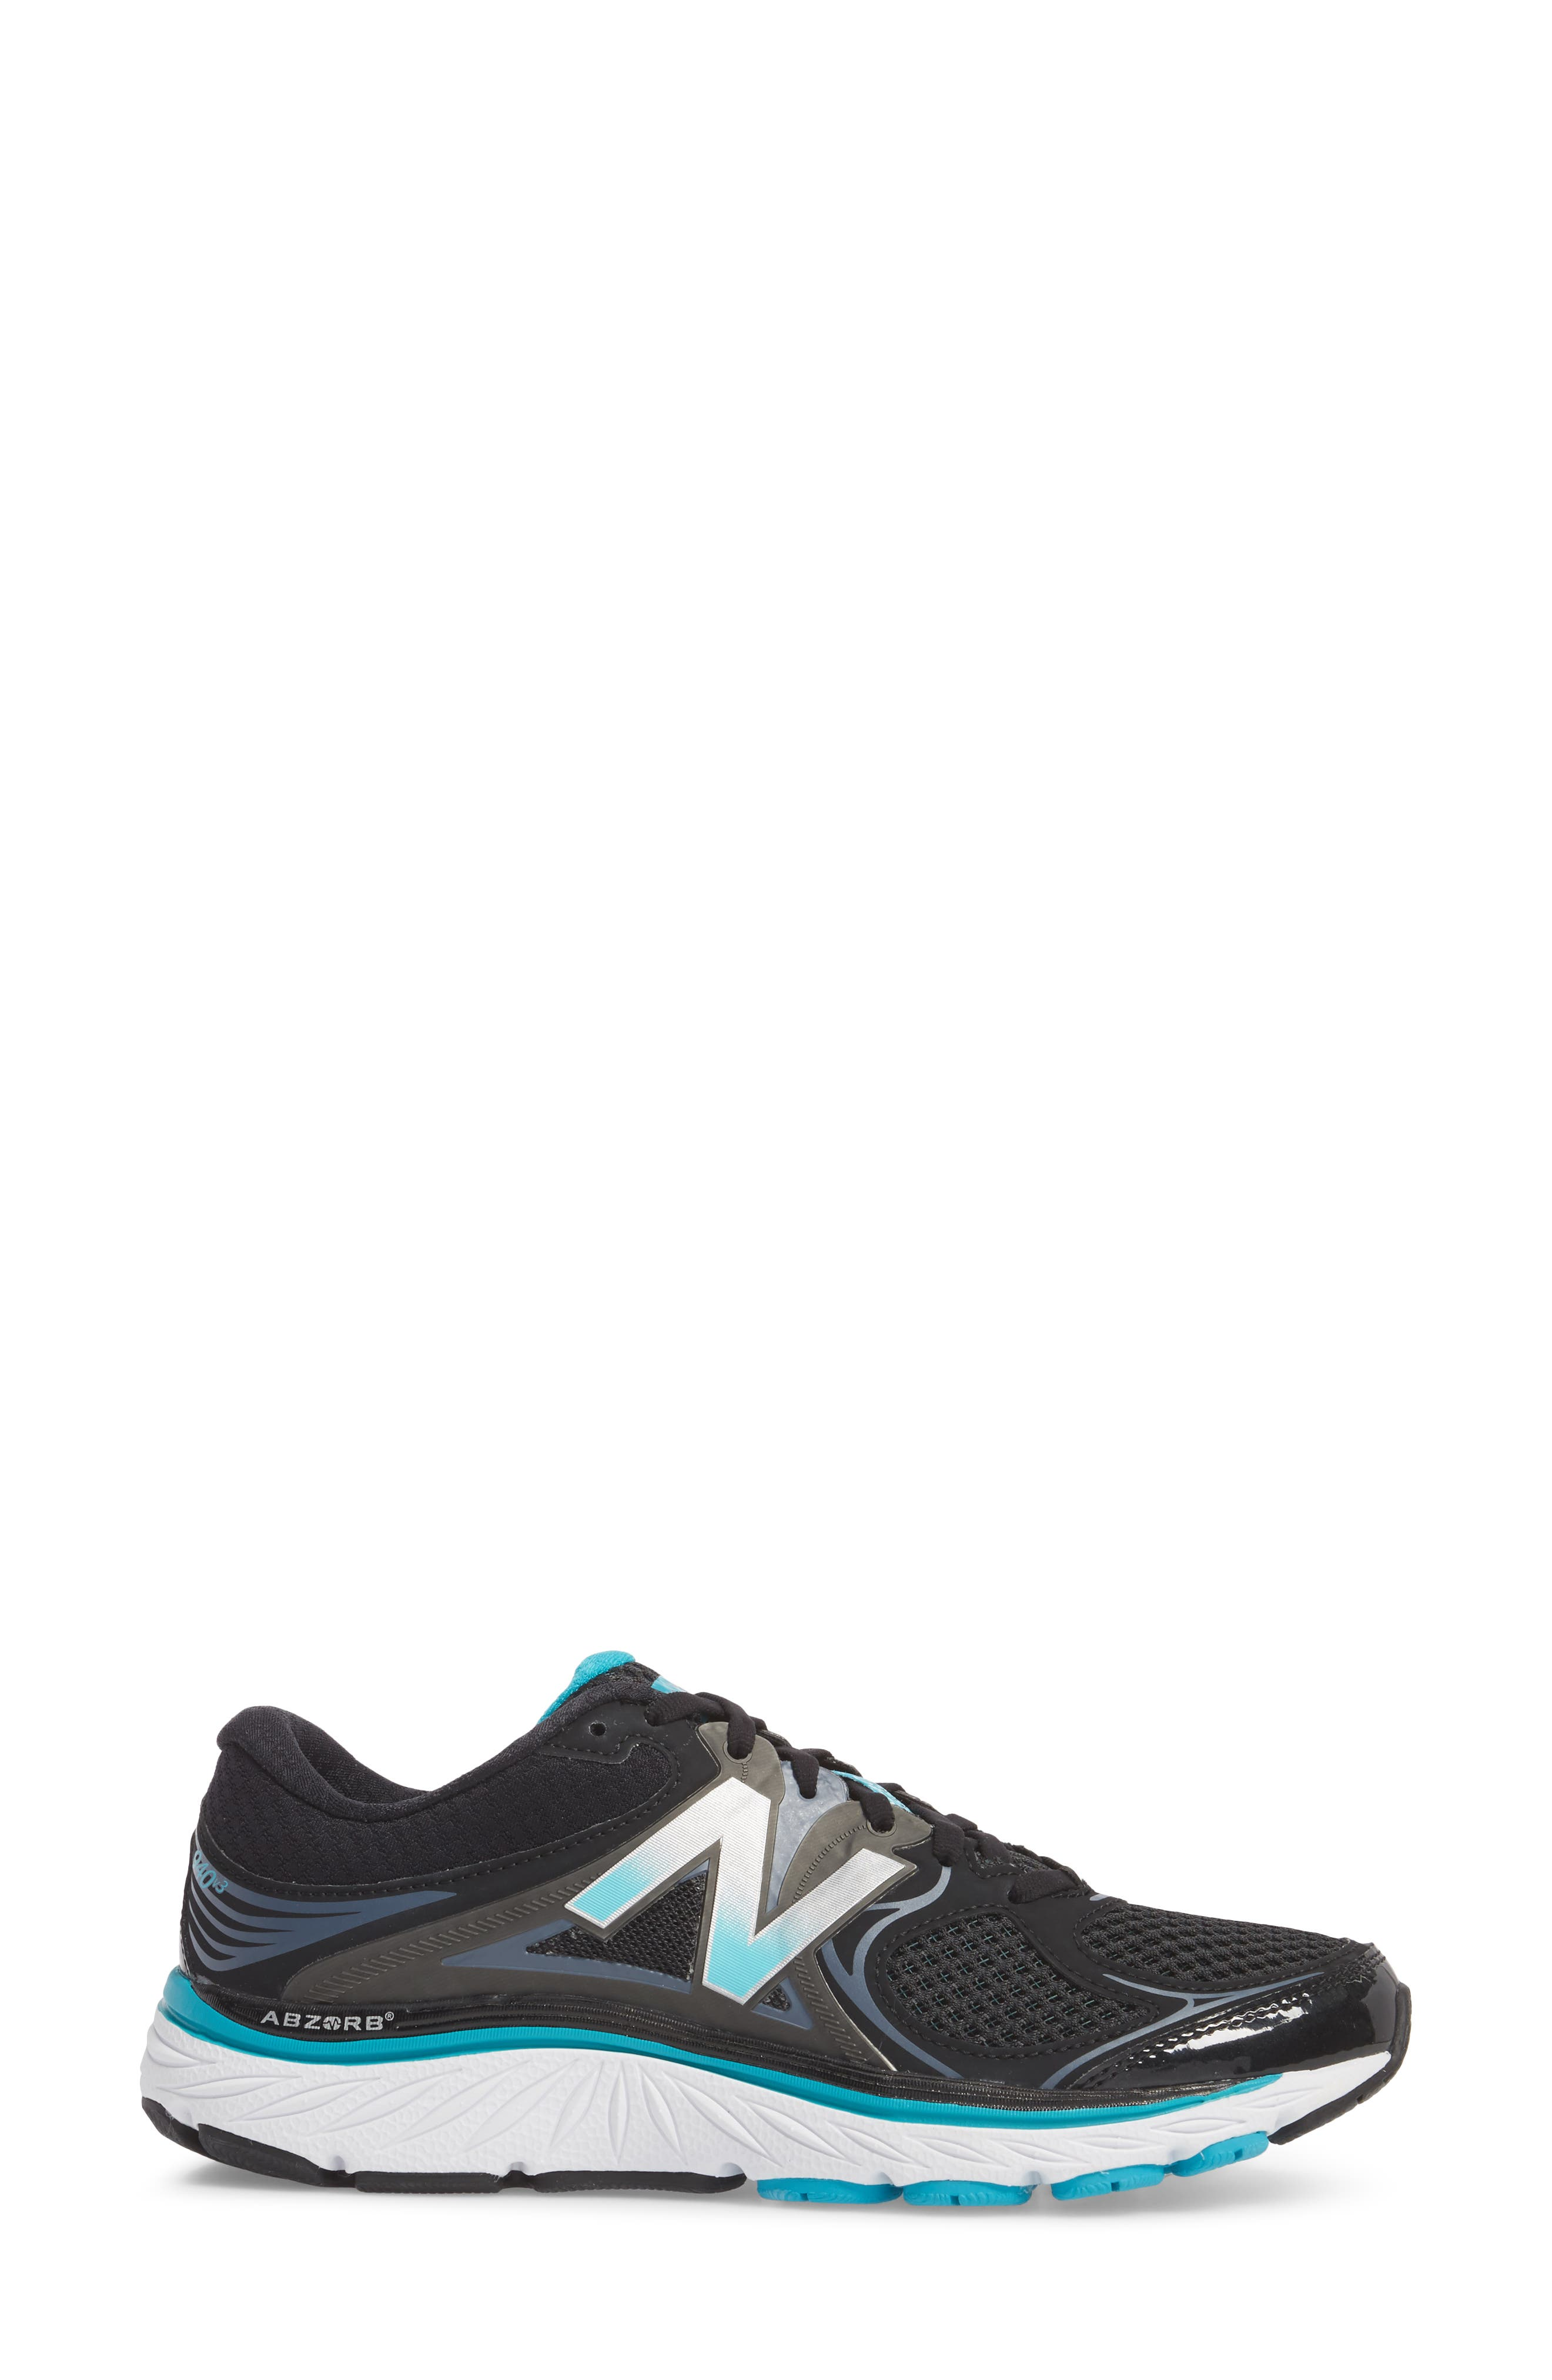 Alternate Image 3  - New Balance 940v3 Running Shoe (Women)